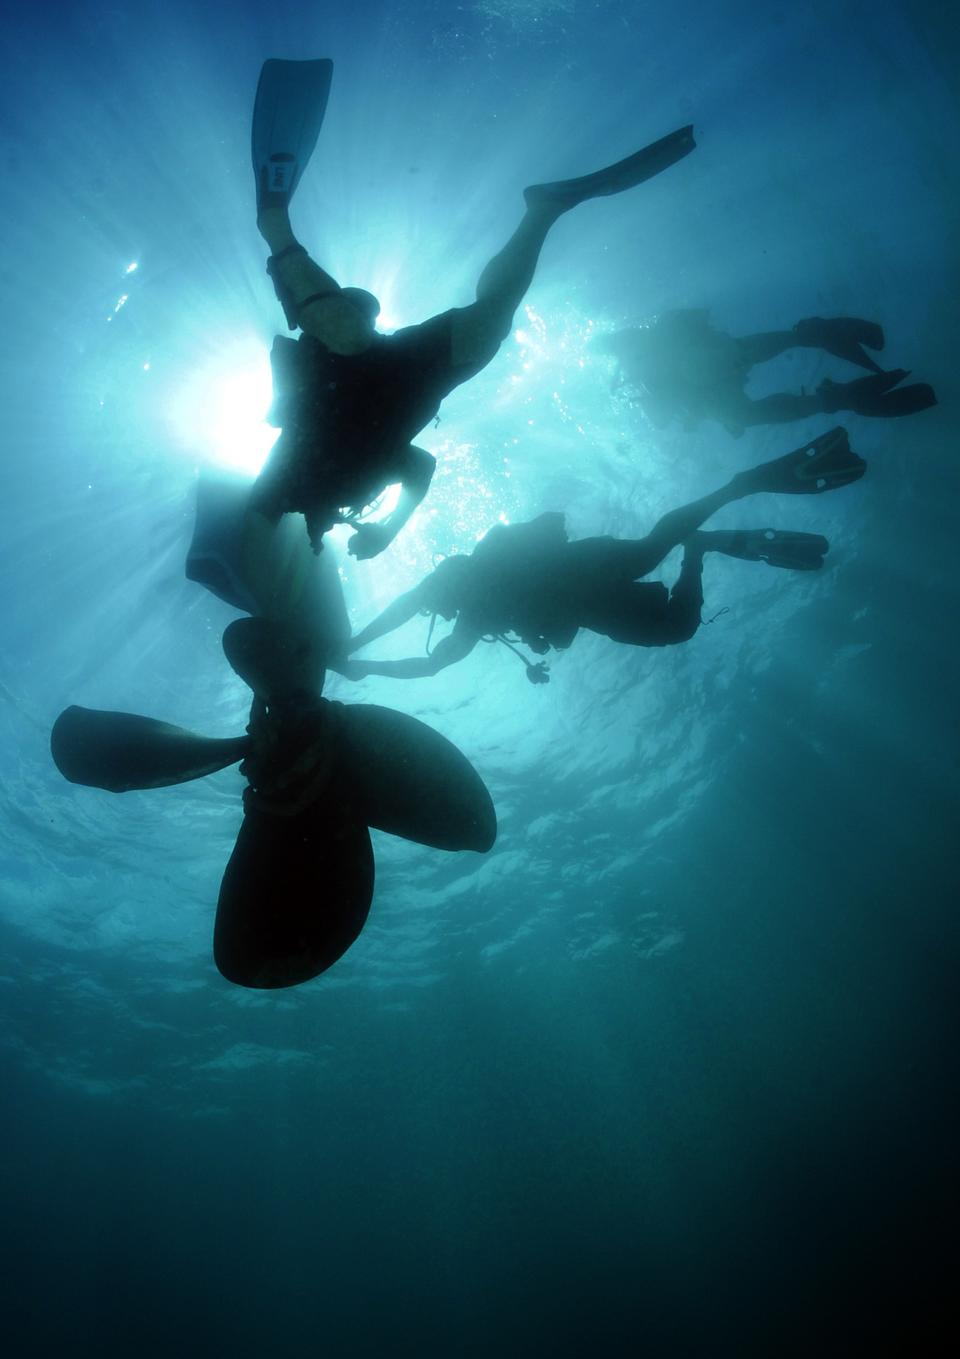 Free Scuba divers in silhouette swimming under water